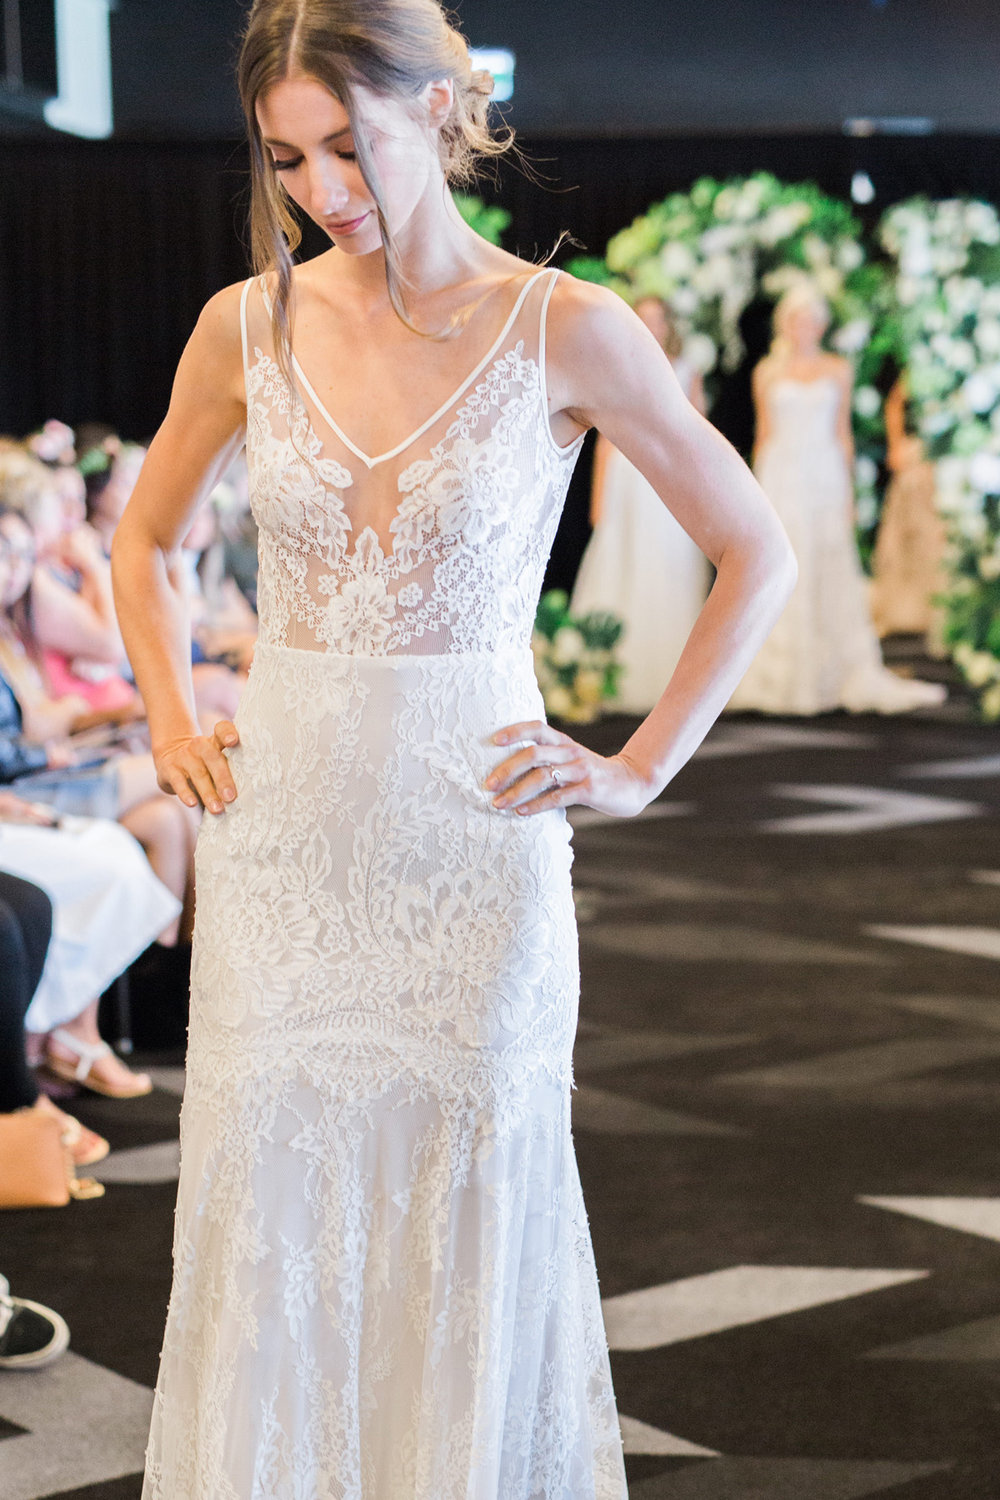 Love-Wedding-Festival-Sydney-Wedding-Gown-Angela-Osagie-21.jpg